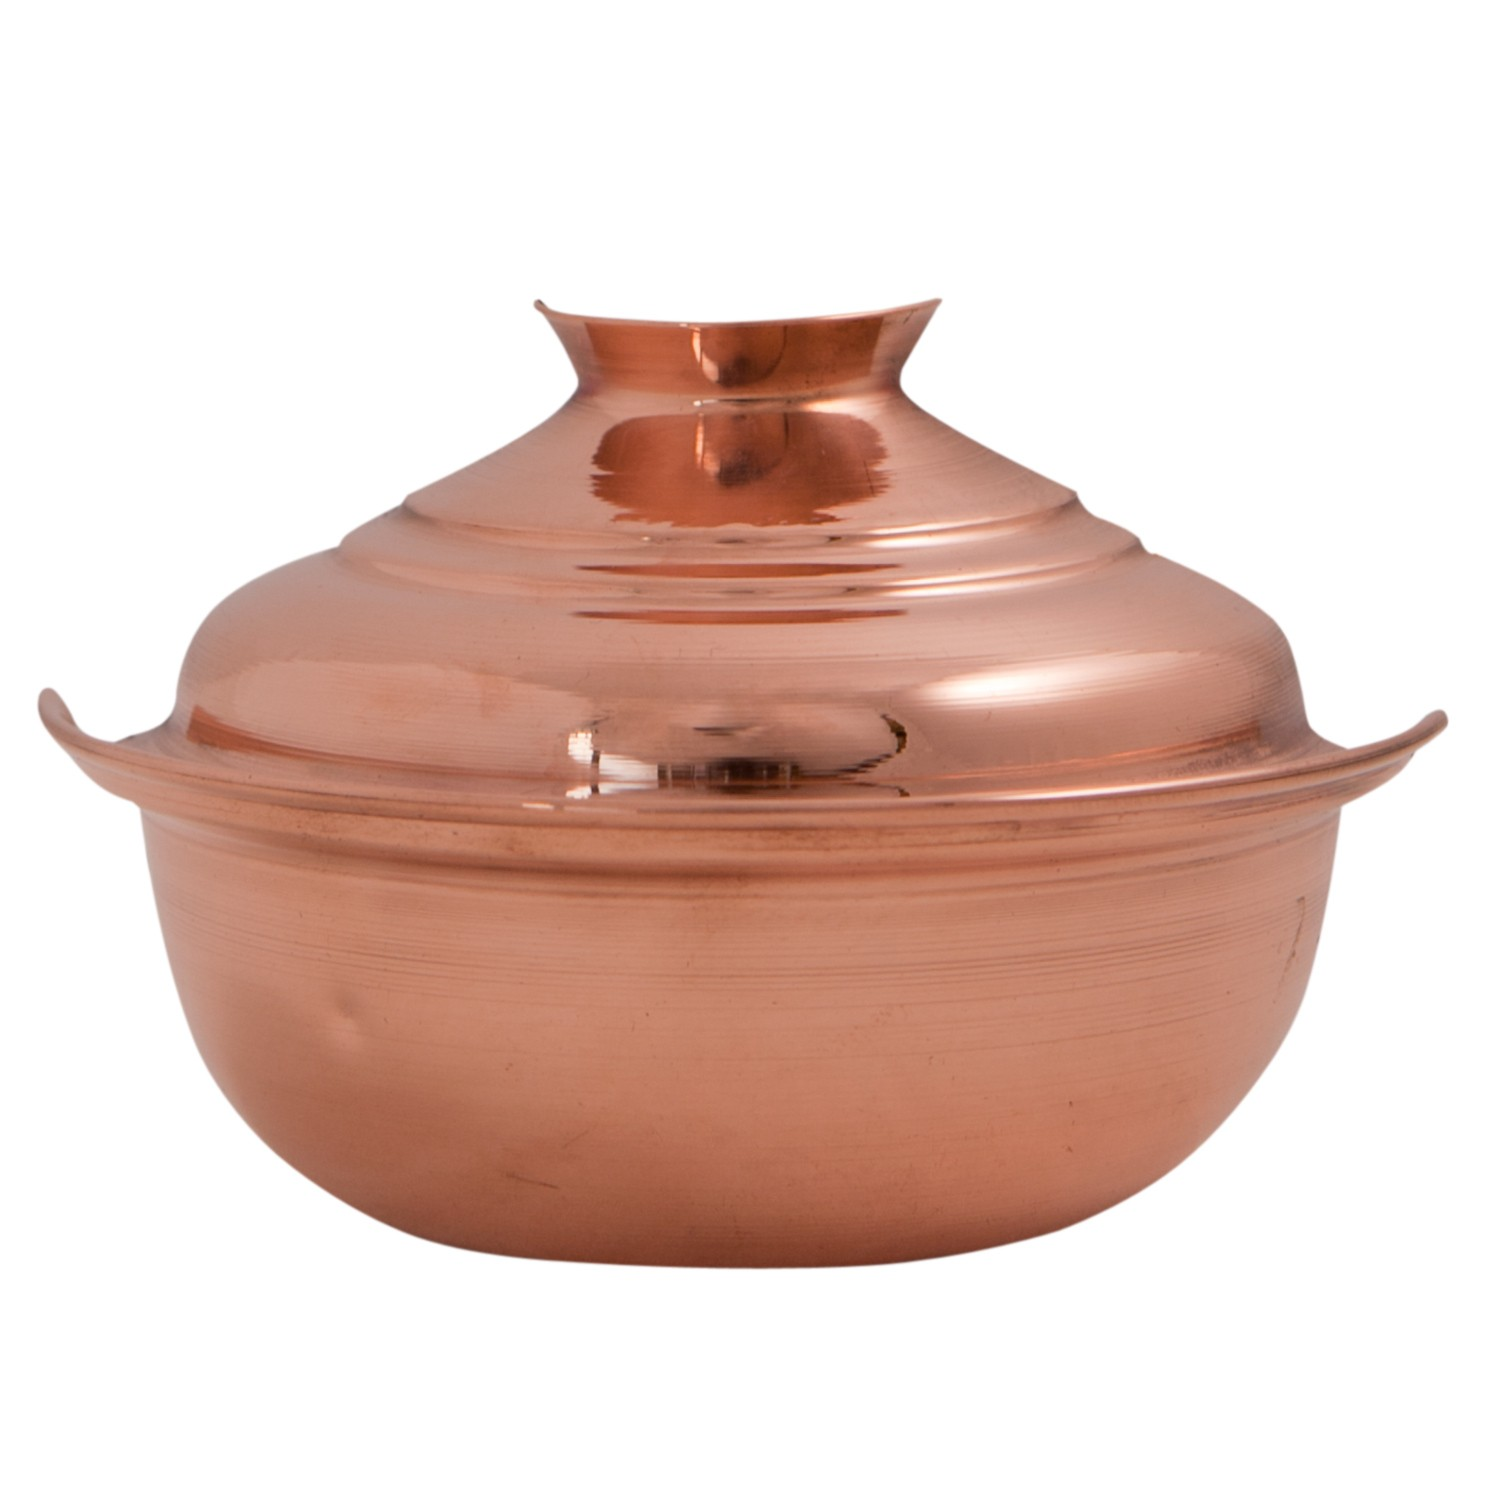 Kitchen_Wall_Hanging_Copper_Cooking_Pot-1